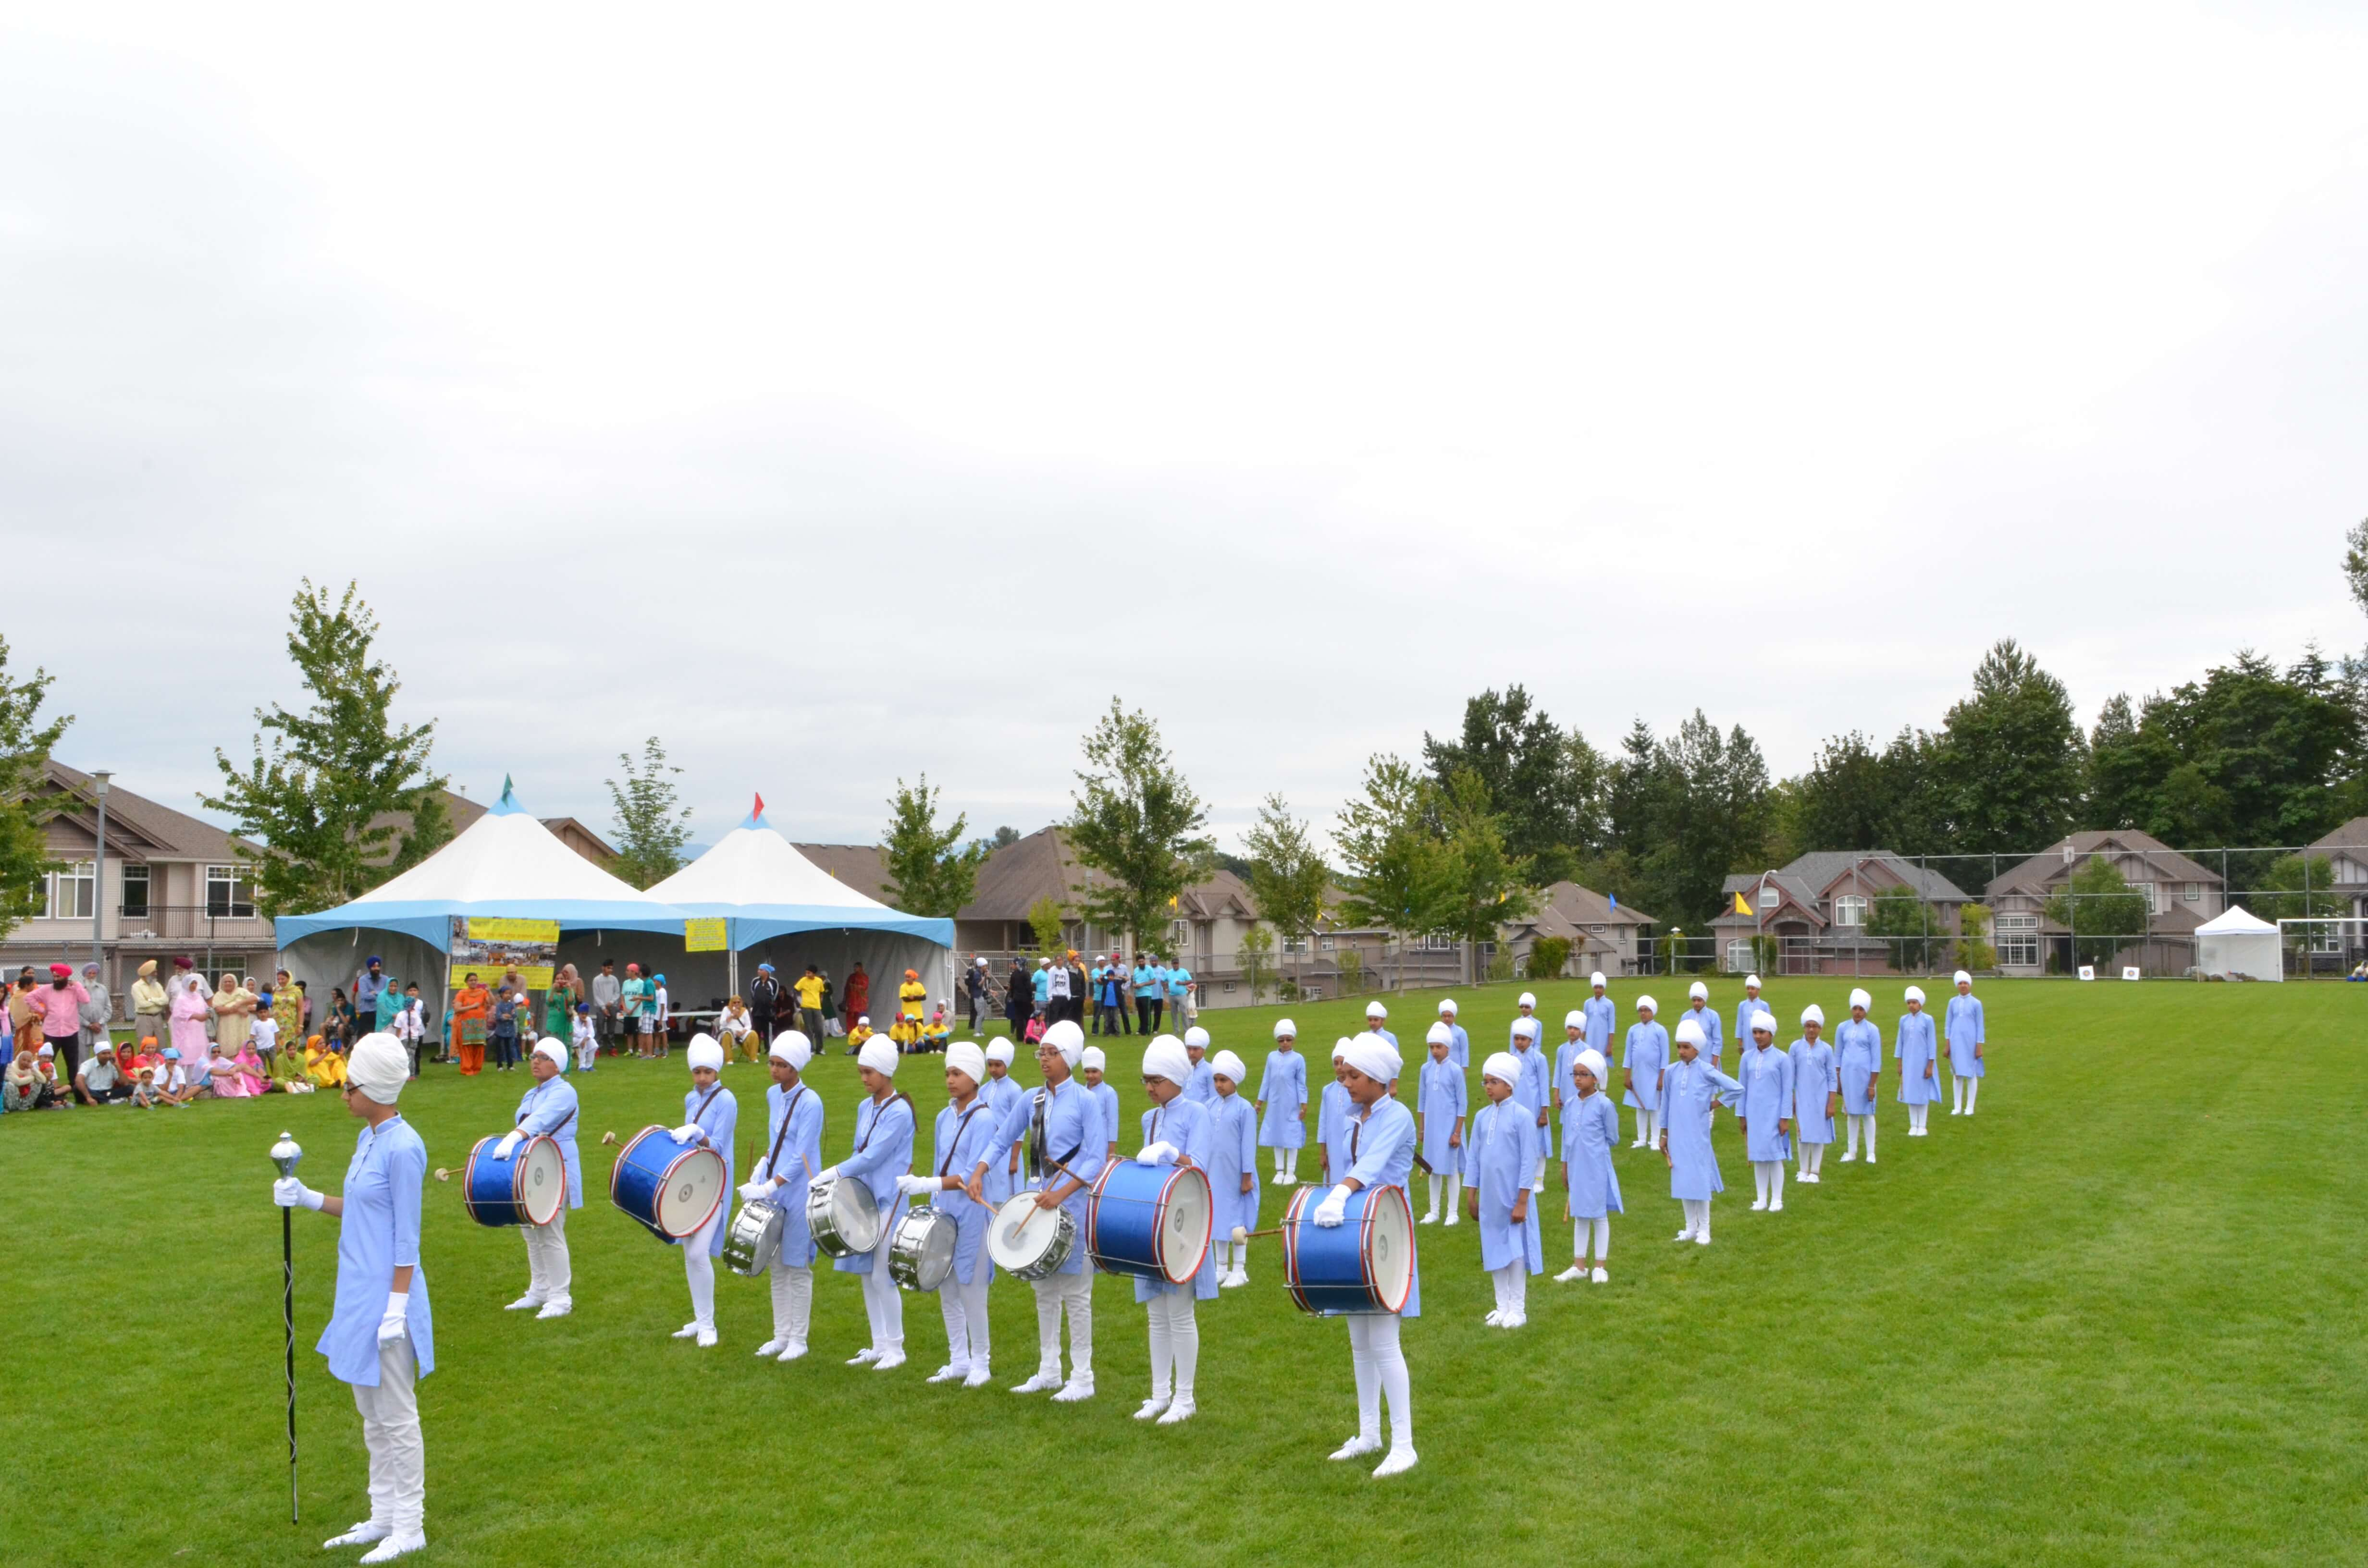 A band team performing on a field